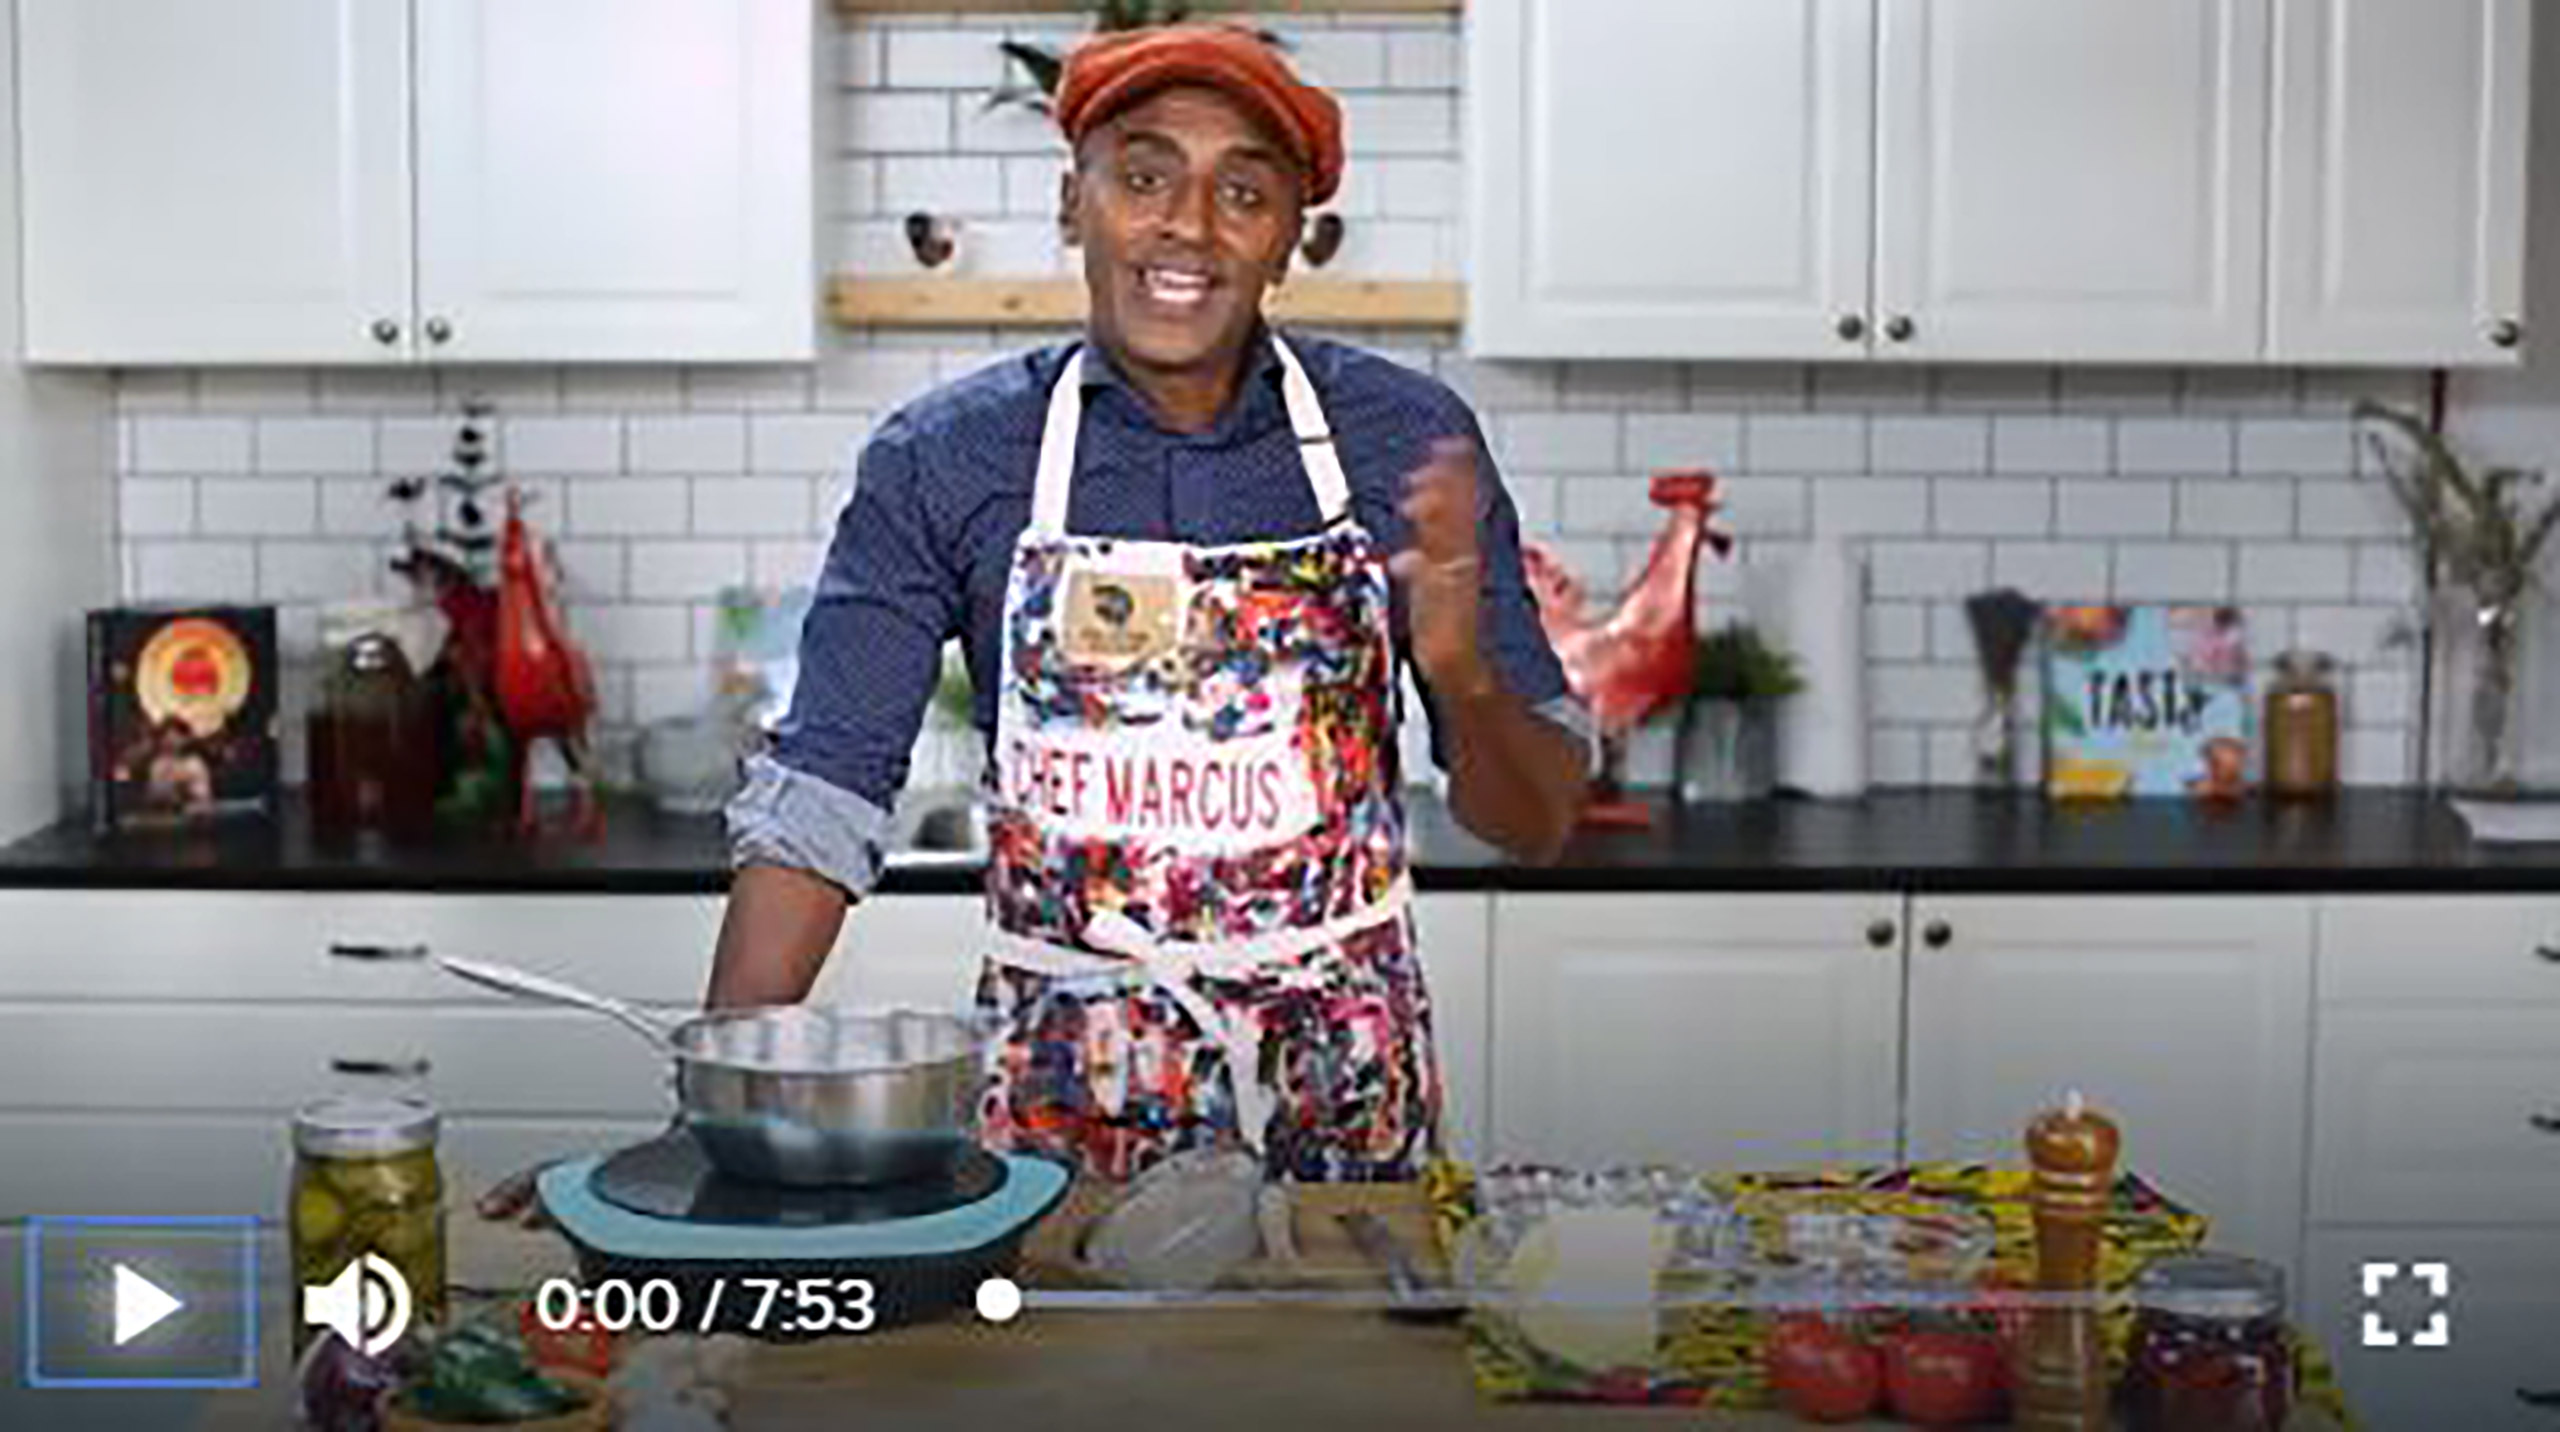 Chef Marcus Samuelsson with apron and red cap in his kitchen demonstrating how to make the Ethiopian dish, tibs